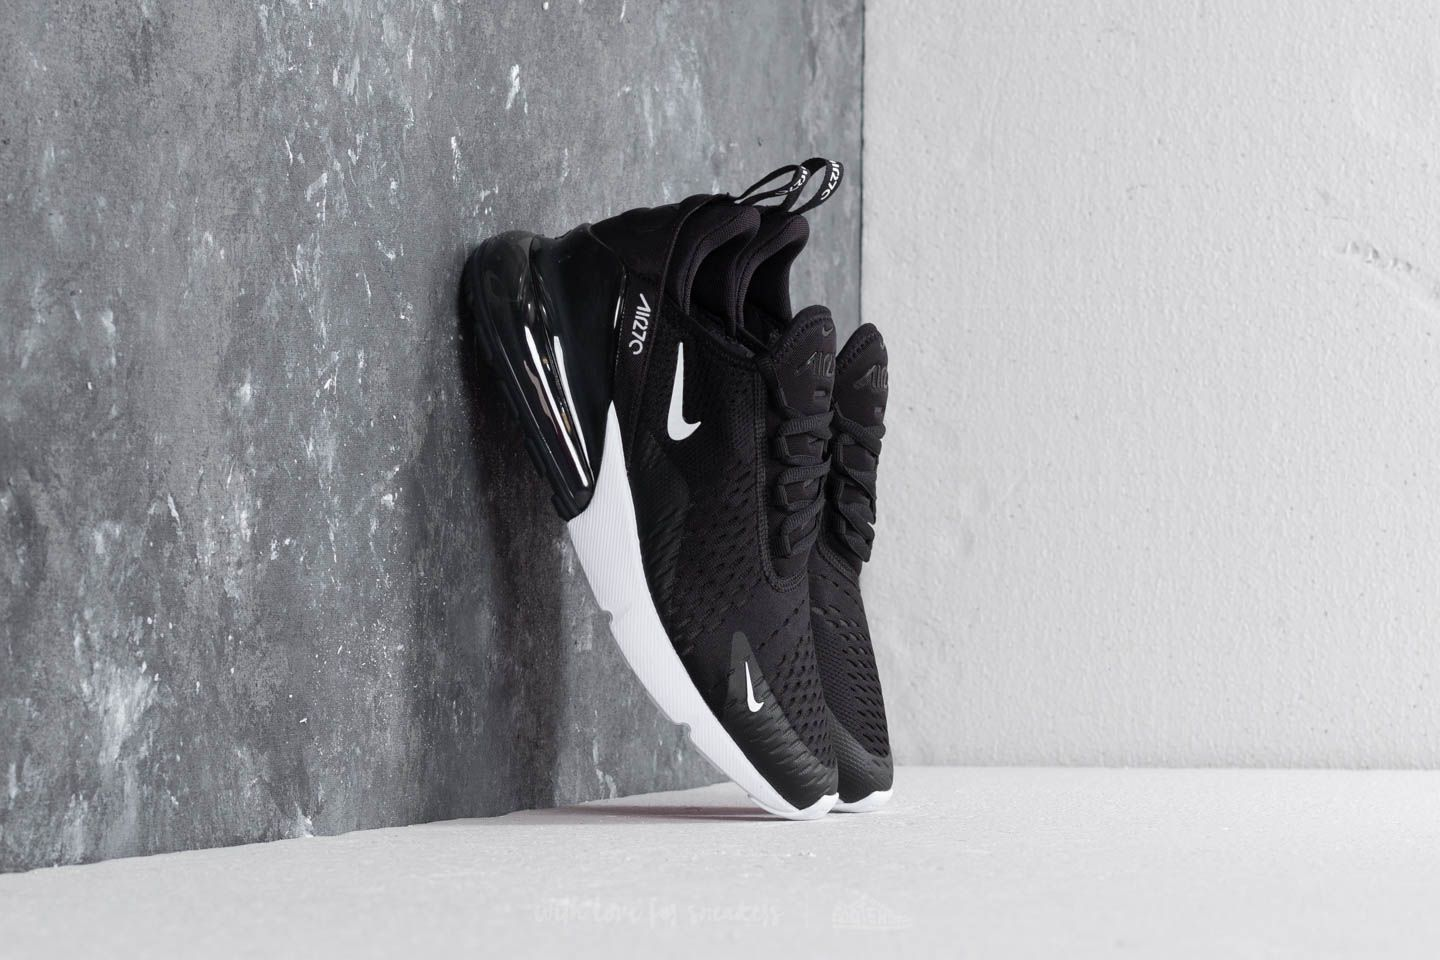 Muške tenisice Nike Air Max 270 Black/ Anthracite-White-Solar Red